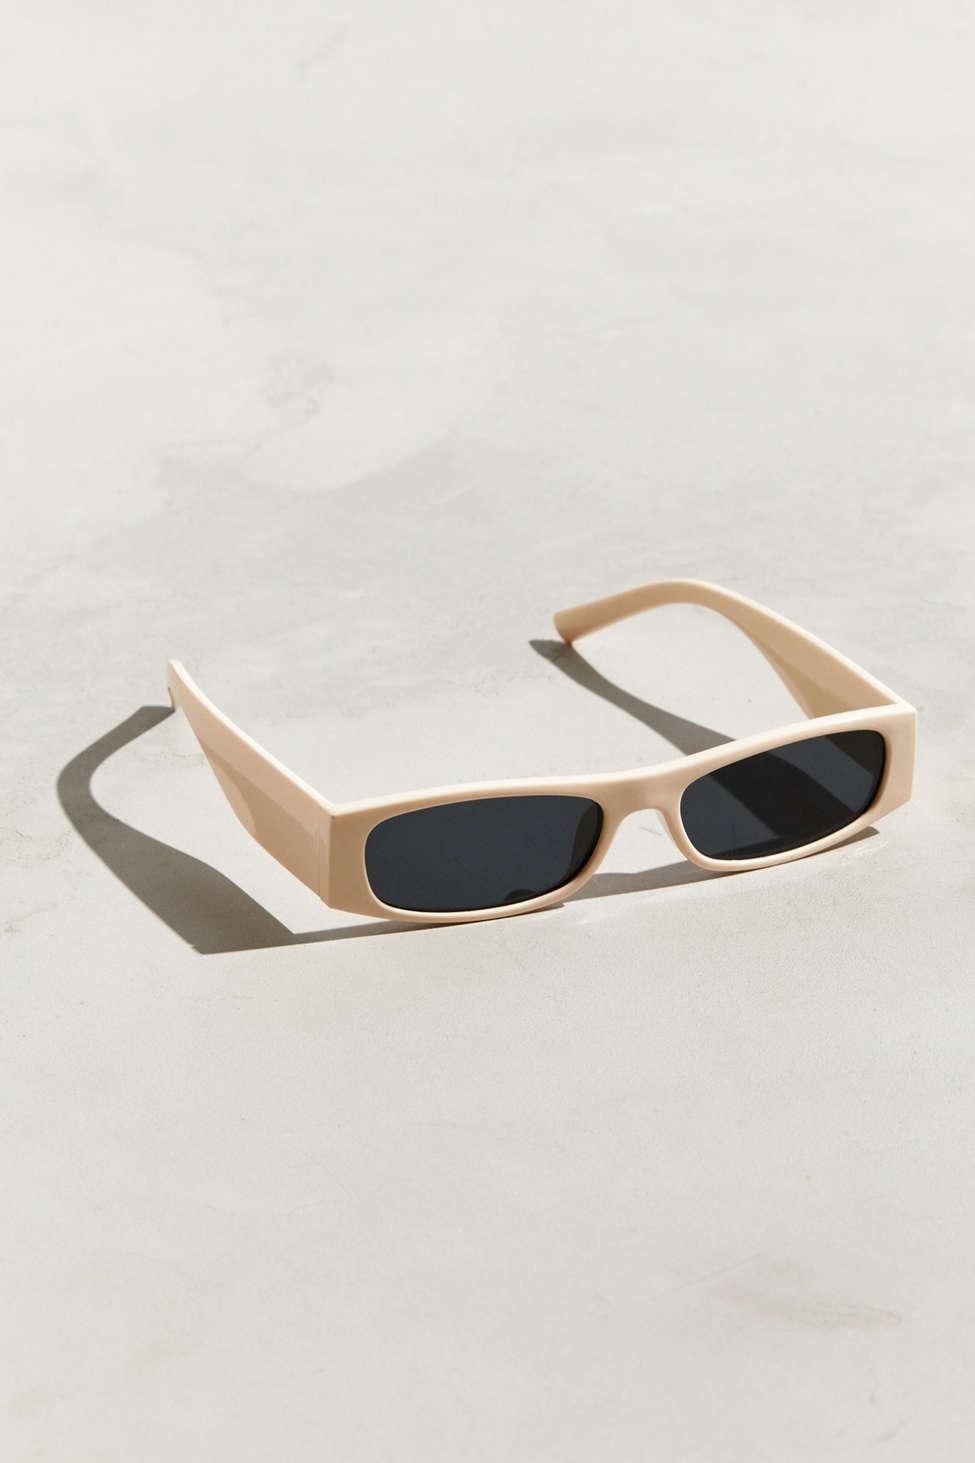 fd247cb015 Lyst - Urban Outfitters Thick Temple Narrow Rectangle Sunglasses in ...